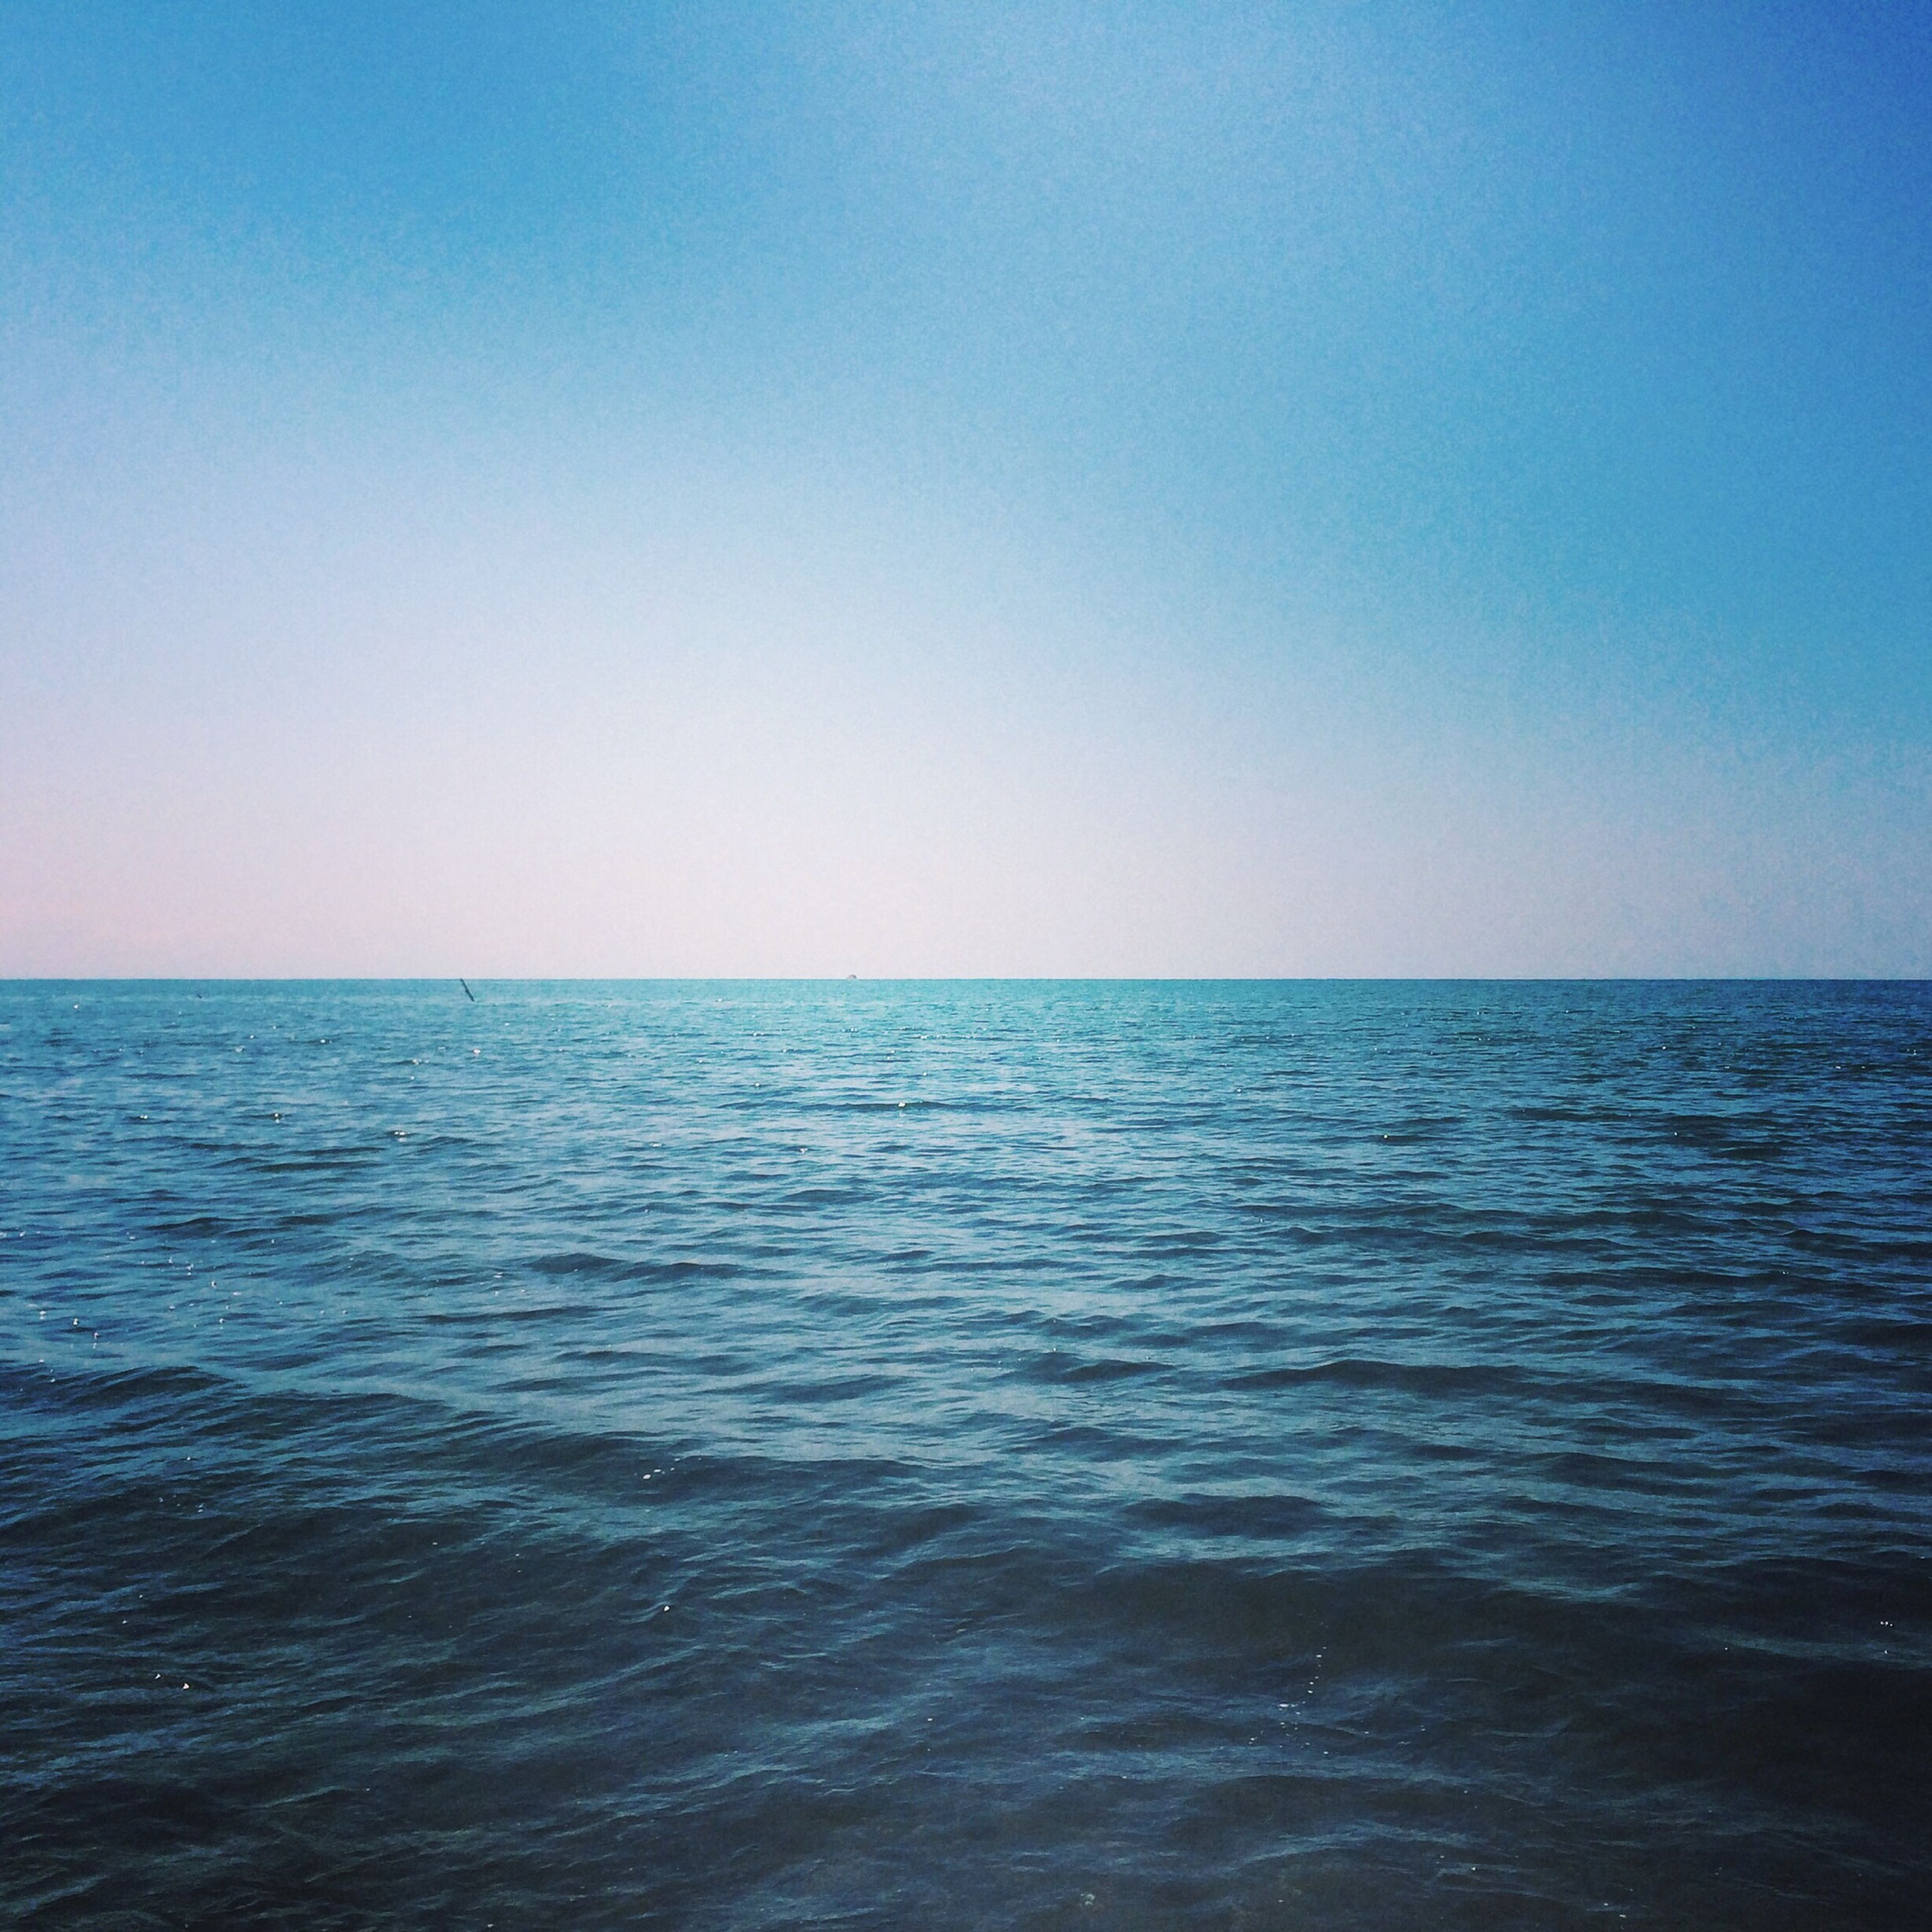 water, sea, clear sky, horizon over water, copy space, tranquil scene, blue, scenics, tranquility, beauty in nature, waterfront, rippled, nature, seascape, idyllic, calm, remote, outdoors, day, no people